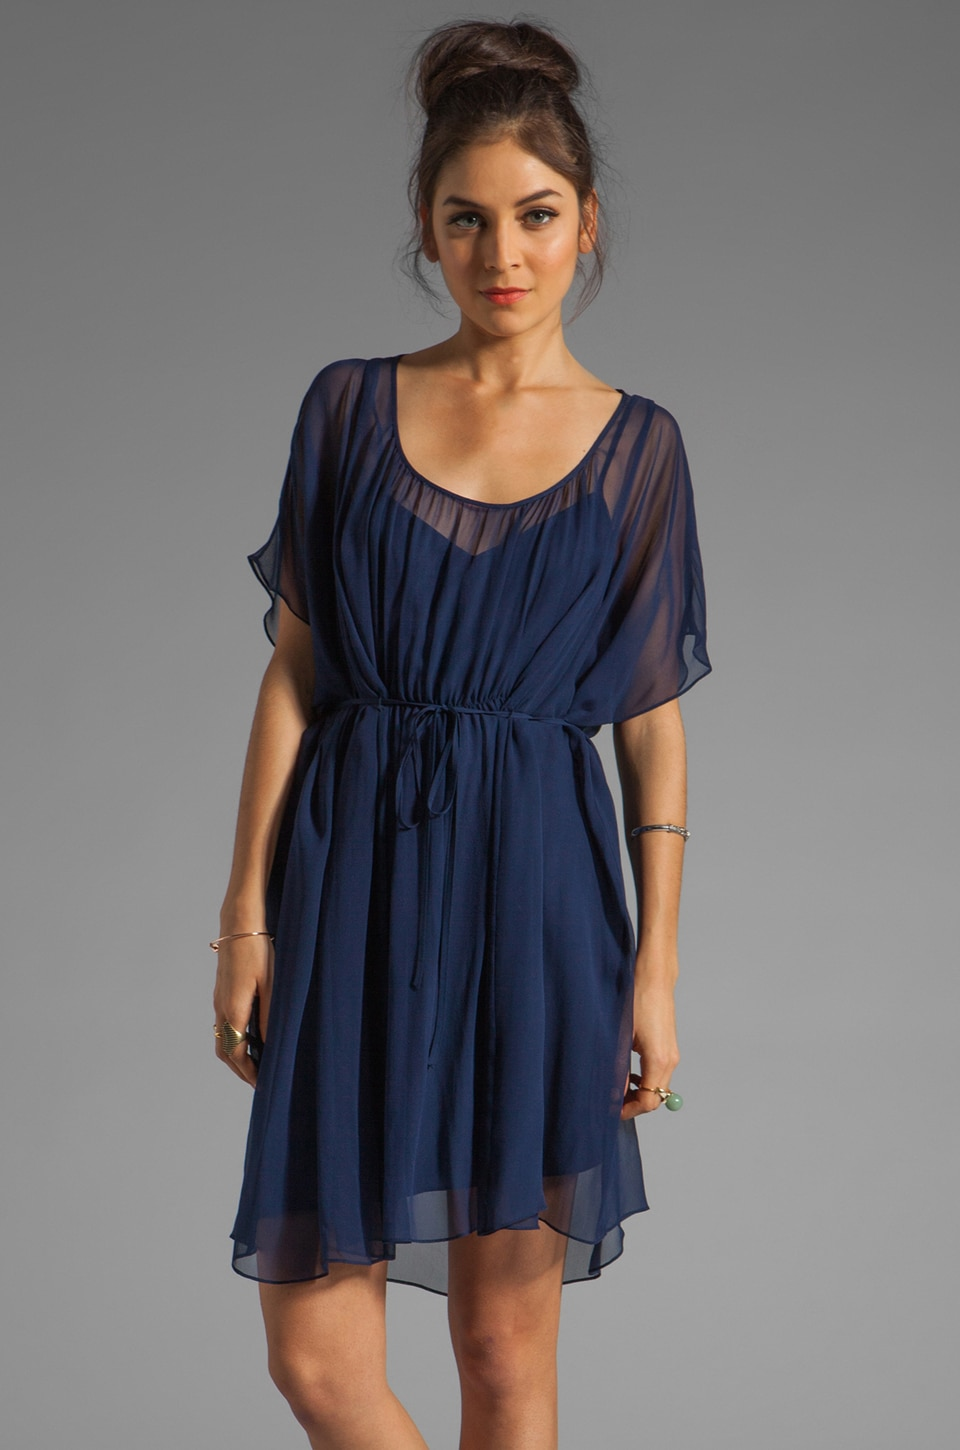 Susana Monaco Chiffon Elise Dress in Deep Sea